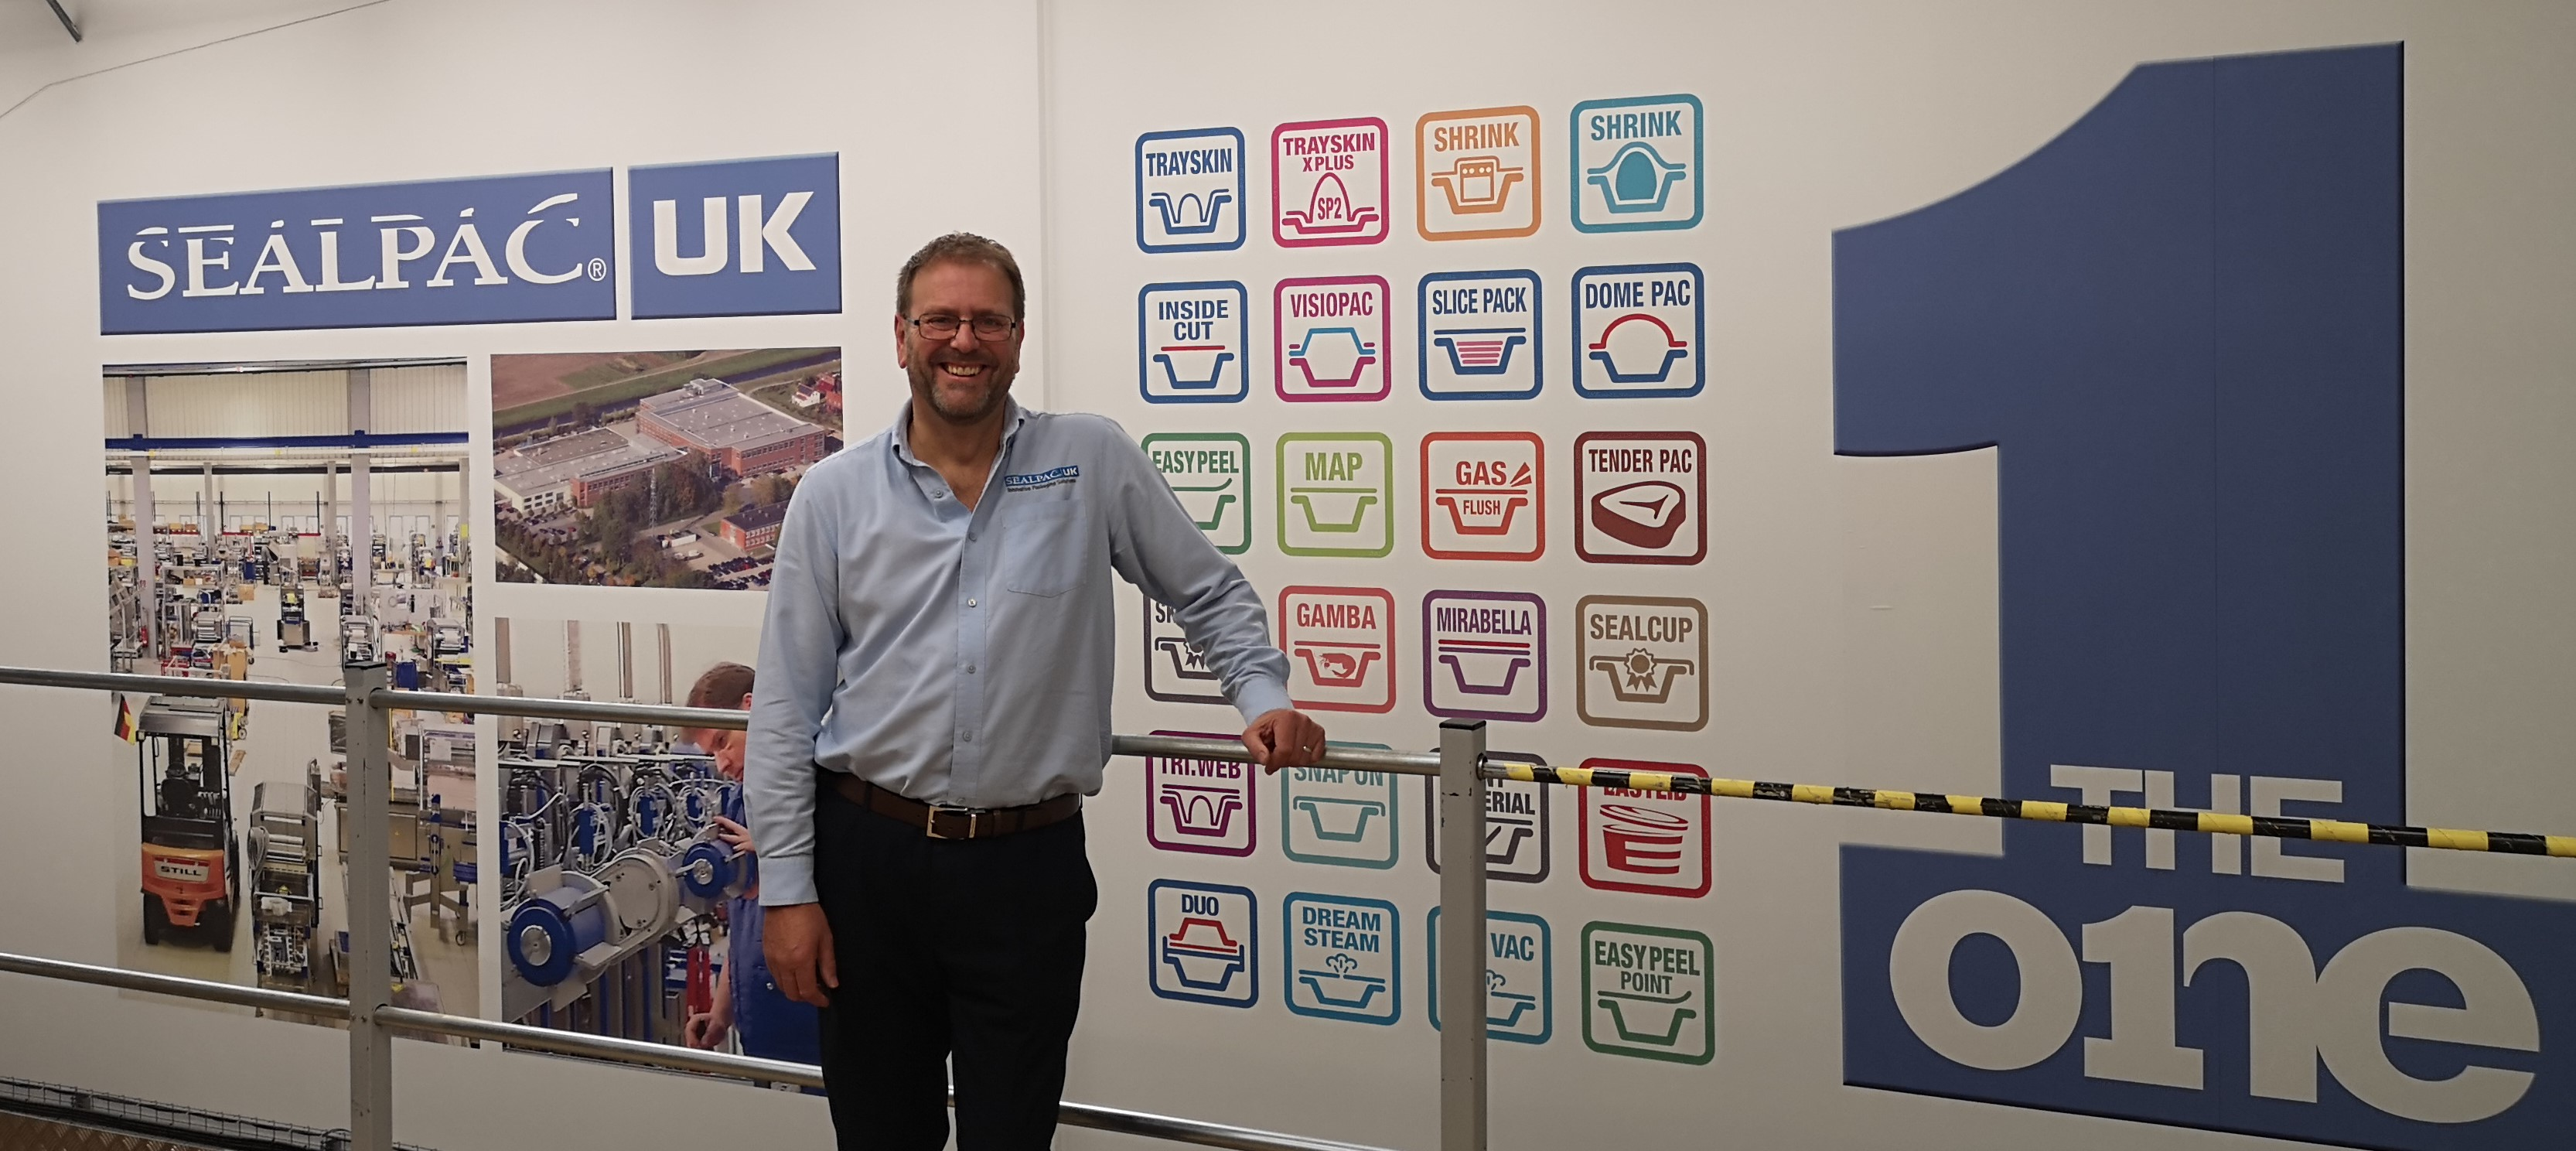 Mark Parris, Head of HR and Finance at Sealpac UK & Partners